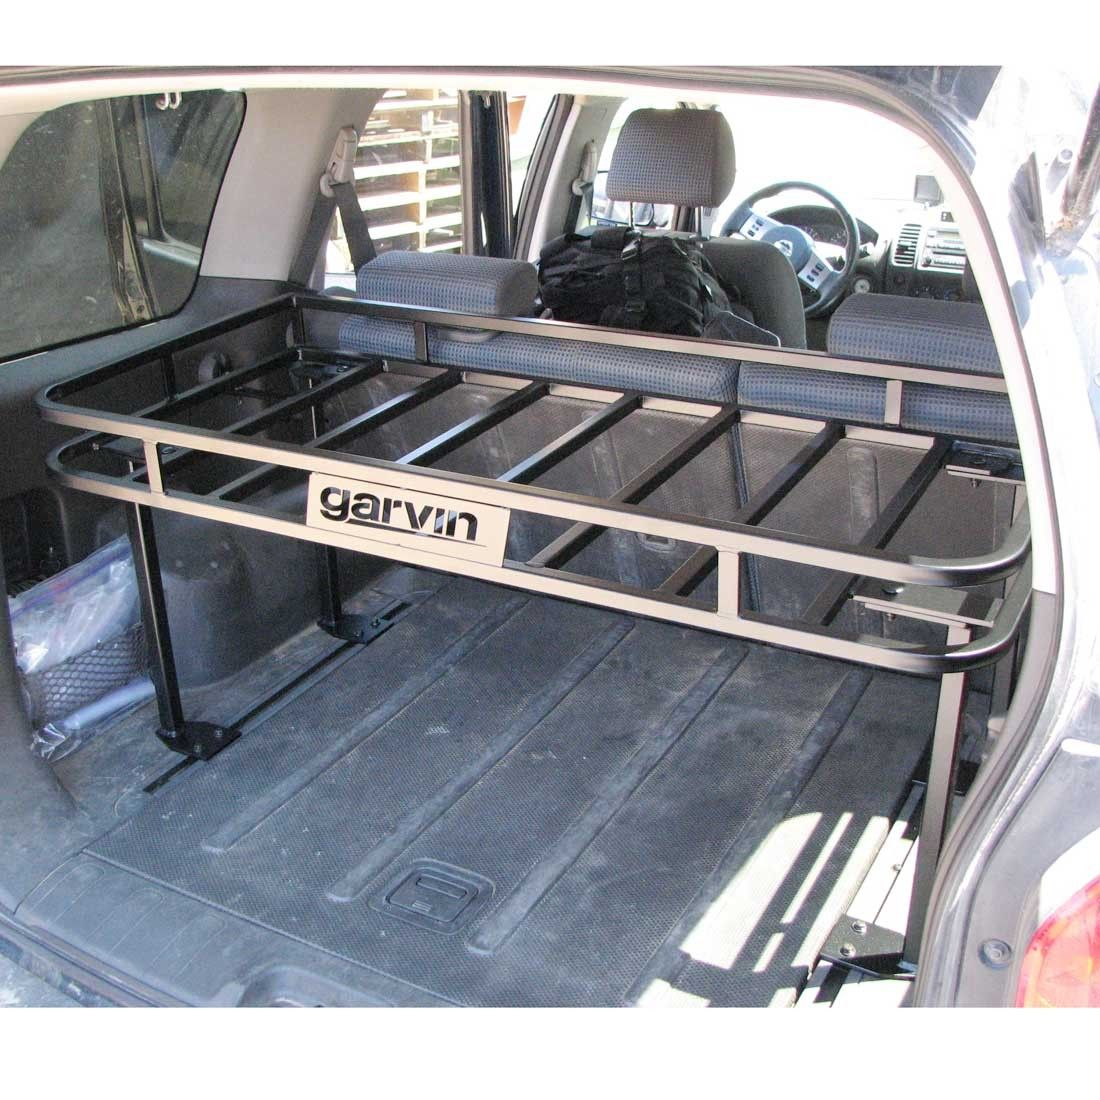 Our Utility Rack Gives A Whole New Meaning To Leave Nothing Behind Our Utility Rack Gives You A Brand New Level Of Storage Nissan Xterra Truck Mods Jeep Wj